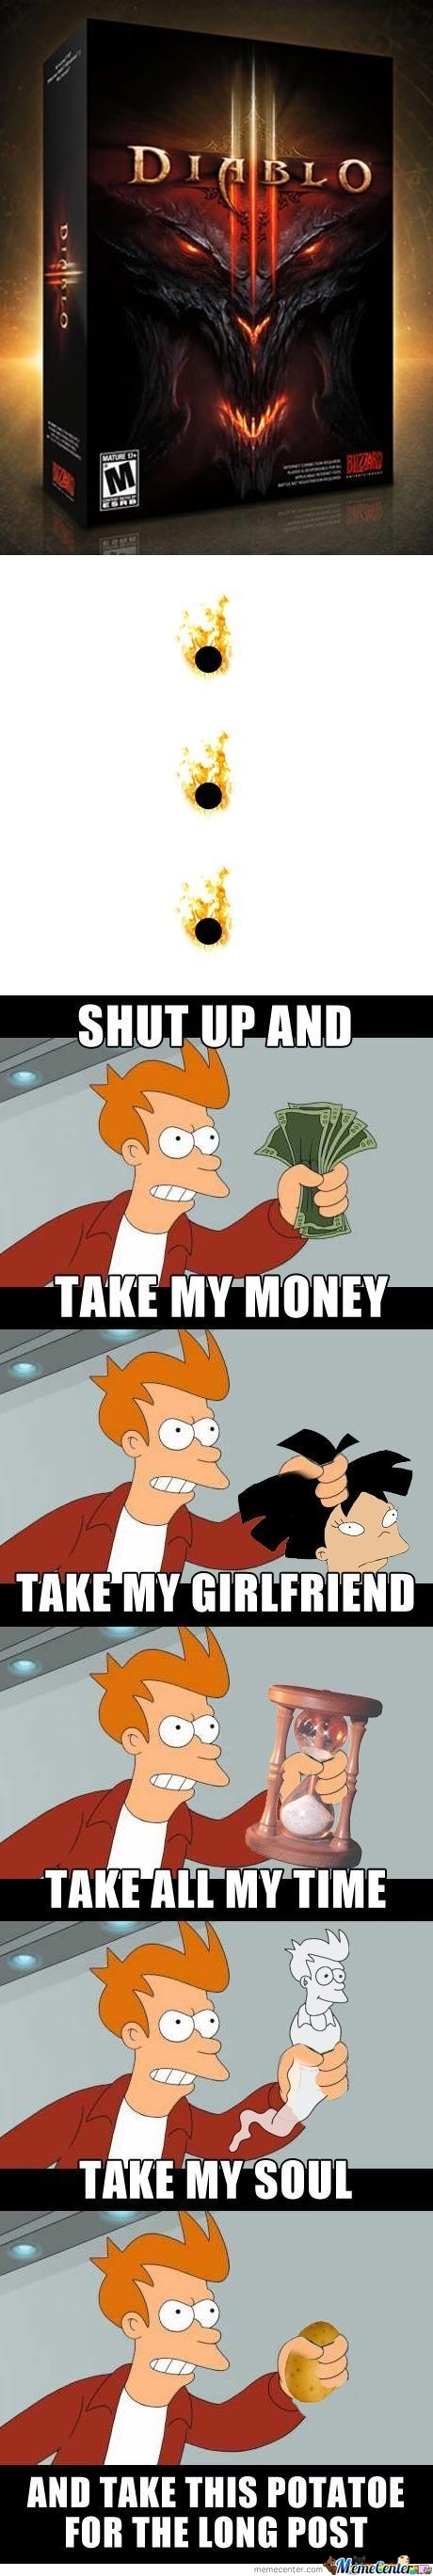 Diablo Iii, Shut Up And Take My Money